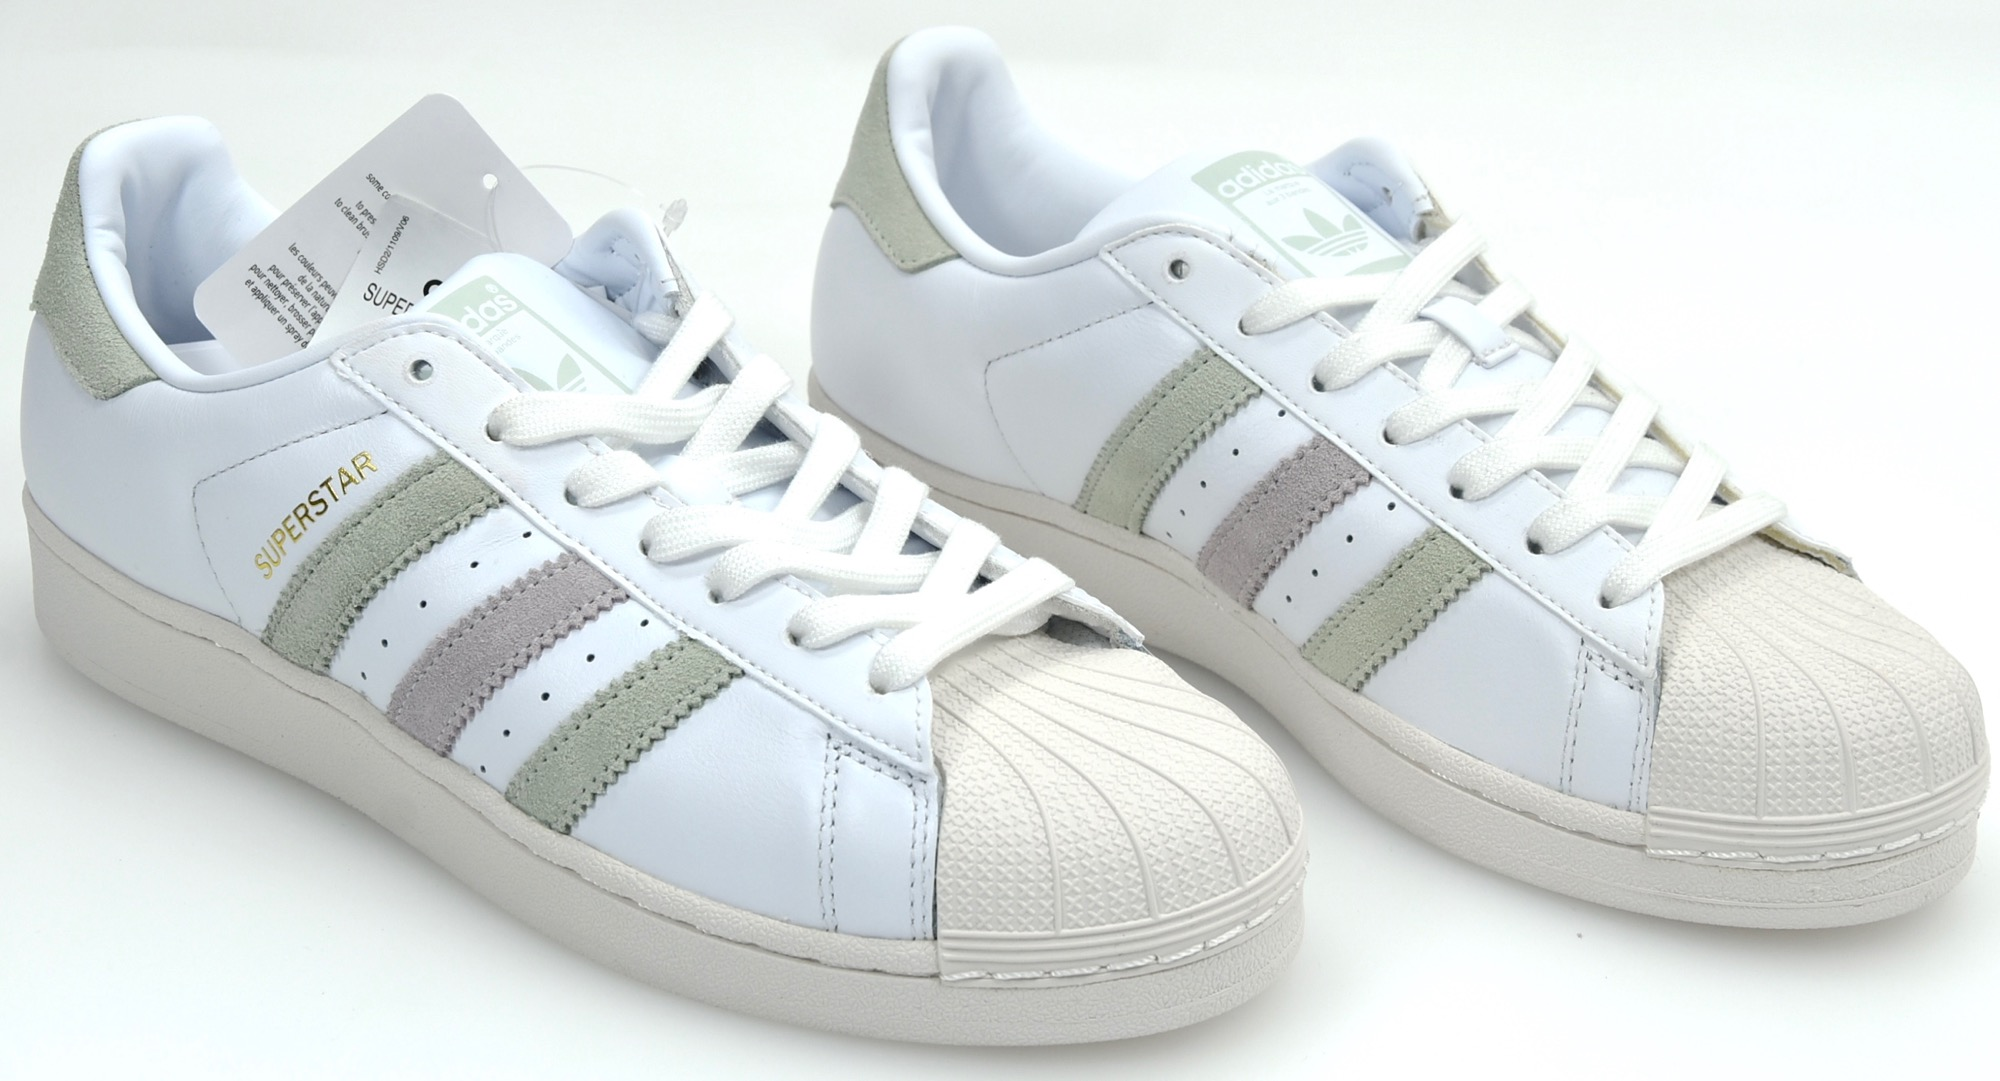 Details about ADIDAS WOMAN SNEAKER SHOES CASUAL FREE TIME LEATHER RUBBER  CODE BB2142 SUPERS W 588de27c687c1